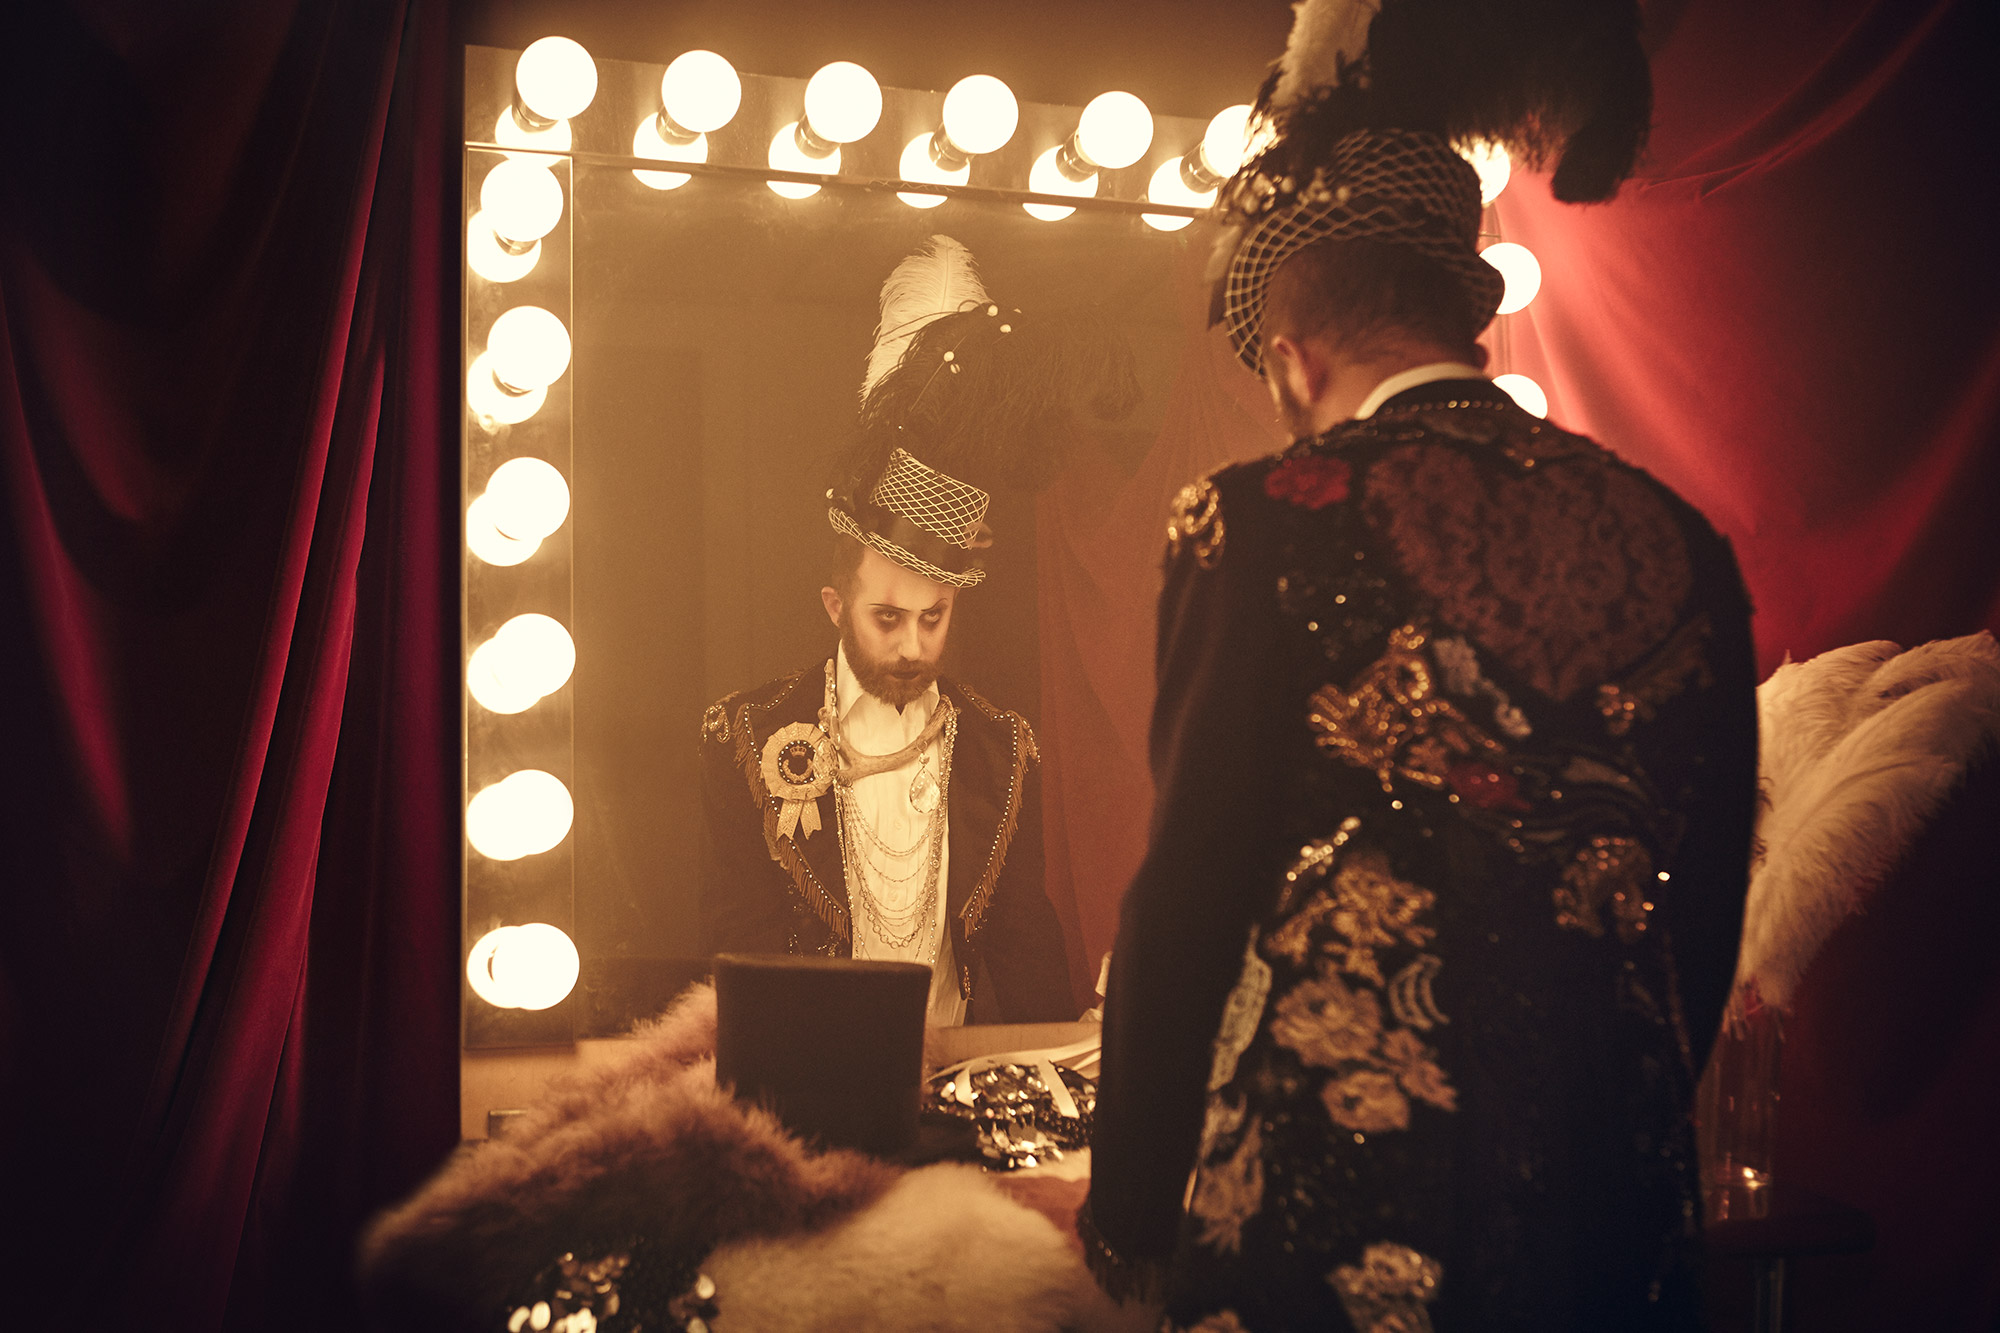 Top Hat with Feathers- Machine Dazzle, Horn and Crystal Necklace- Wren Britton for Purevile, Bejeweled Tailcoat- Elena Kanagy Loux